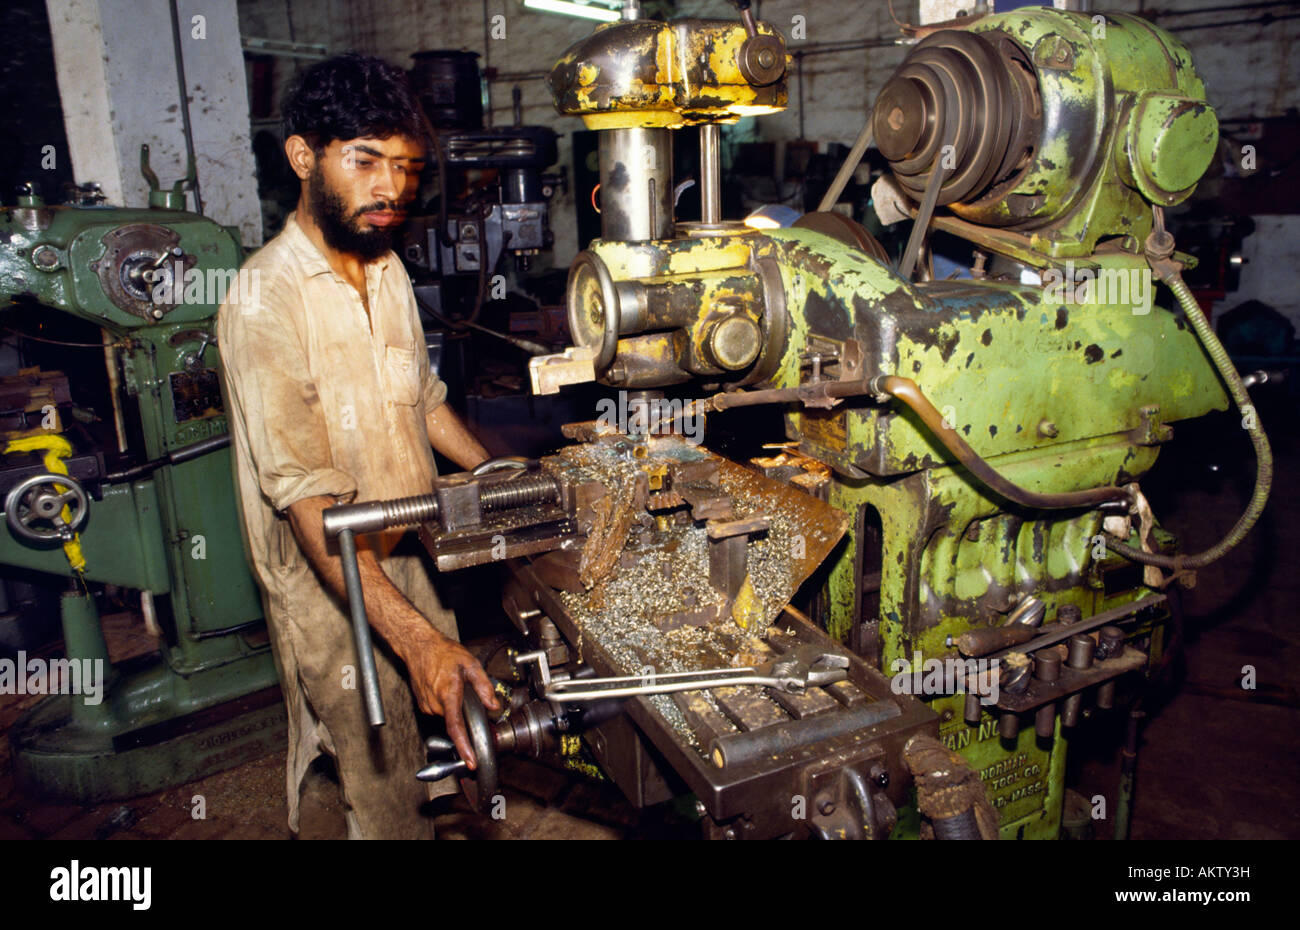 Worker in factory producing AK-47 copies. Darra, North Western Frontier Province, Pakistan. - Stock Image